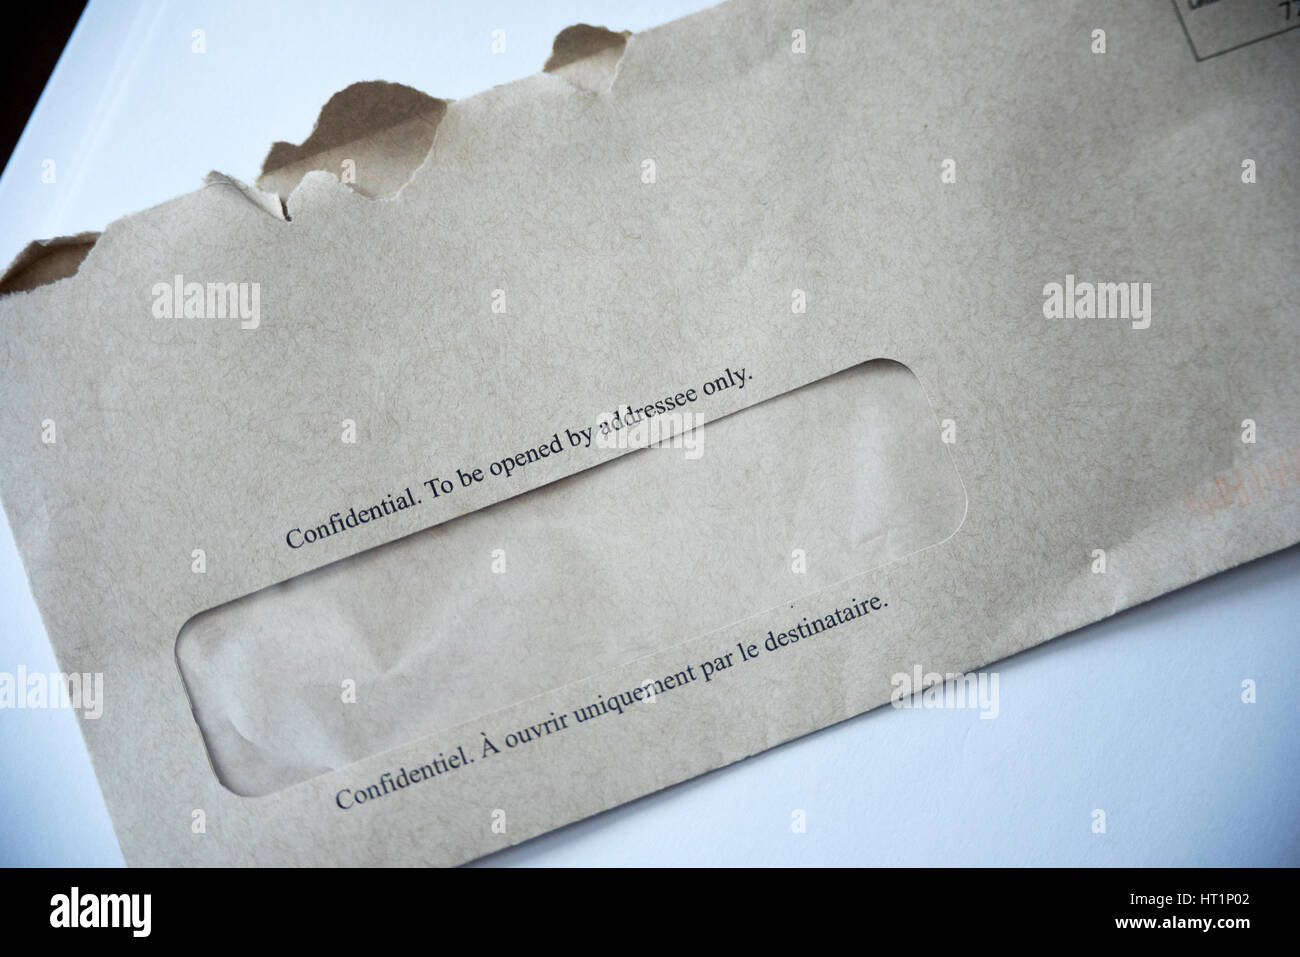 A grey envelope with 'Confidential To Be Opened By Addressee only' written in English and French on the - Stock Image